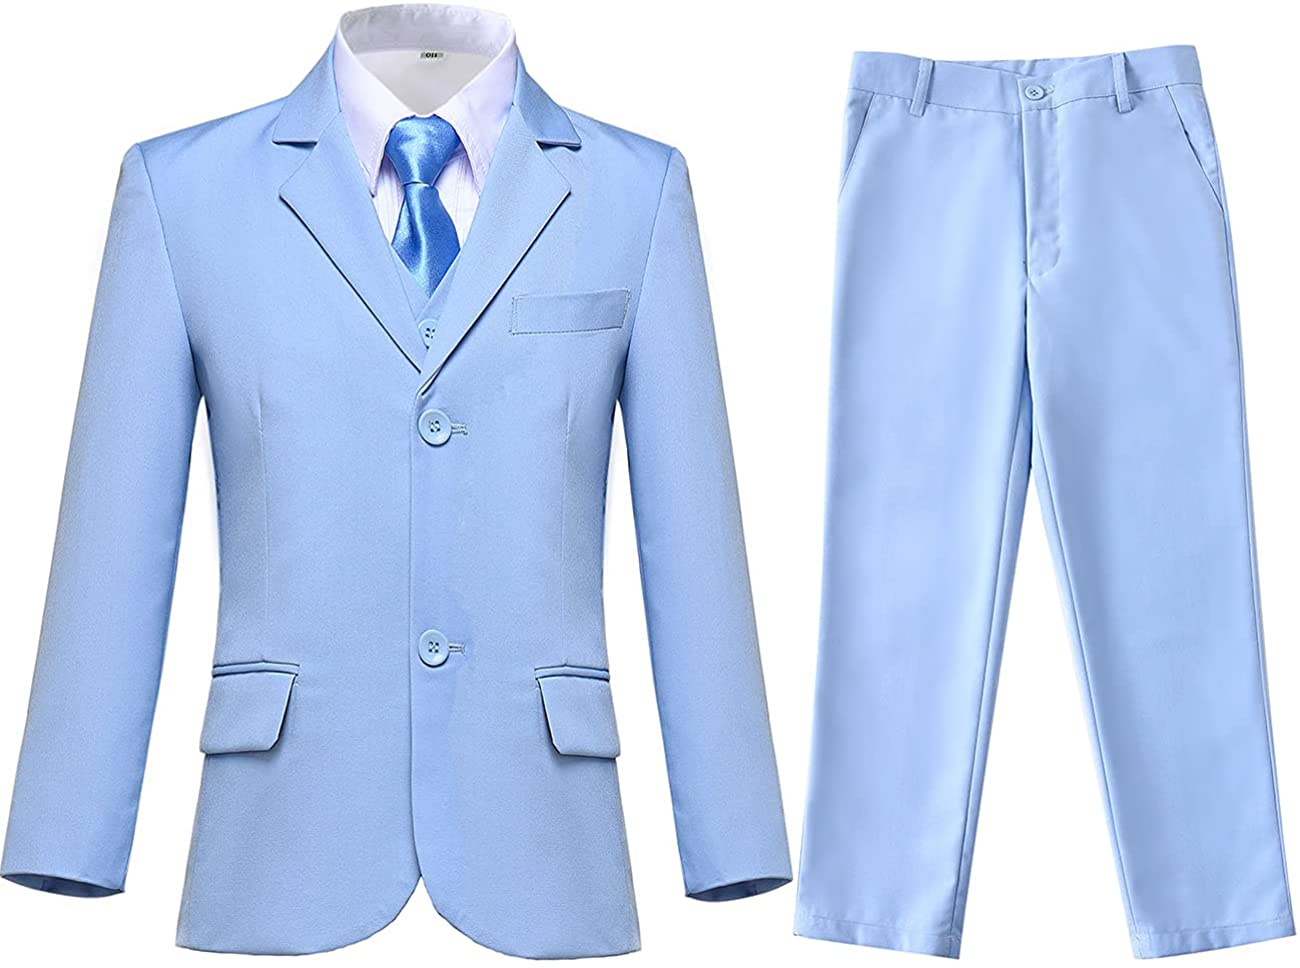 Lycody Boys Suits Kids Formal 5 Piece Dress Suit Set for Weddings Complete Outfit